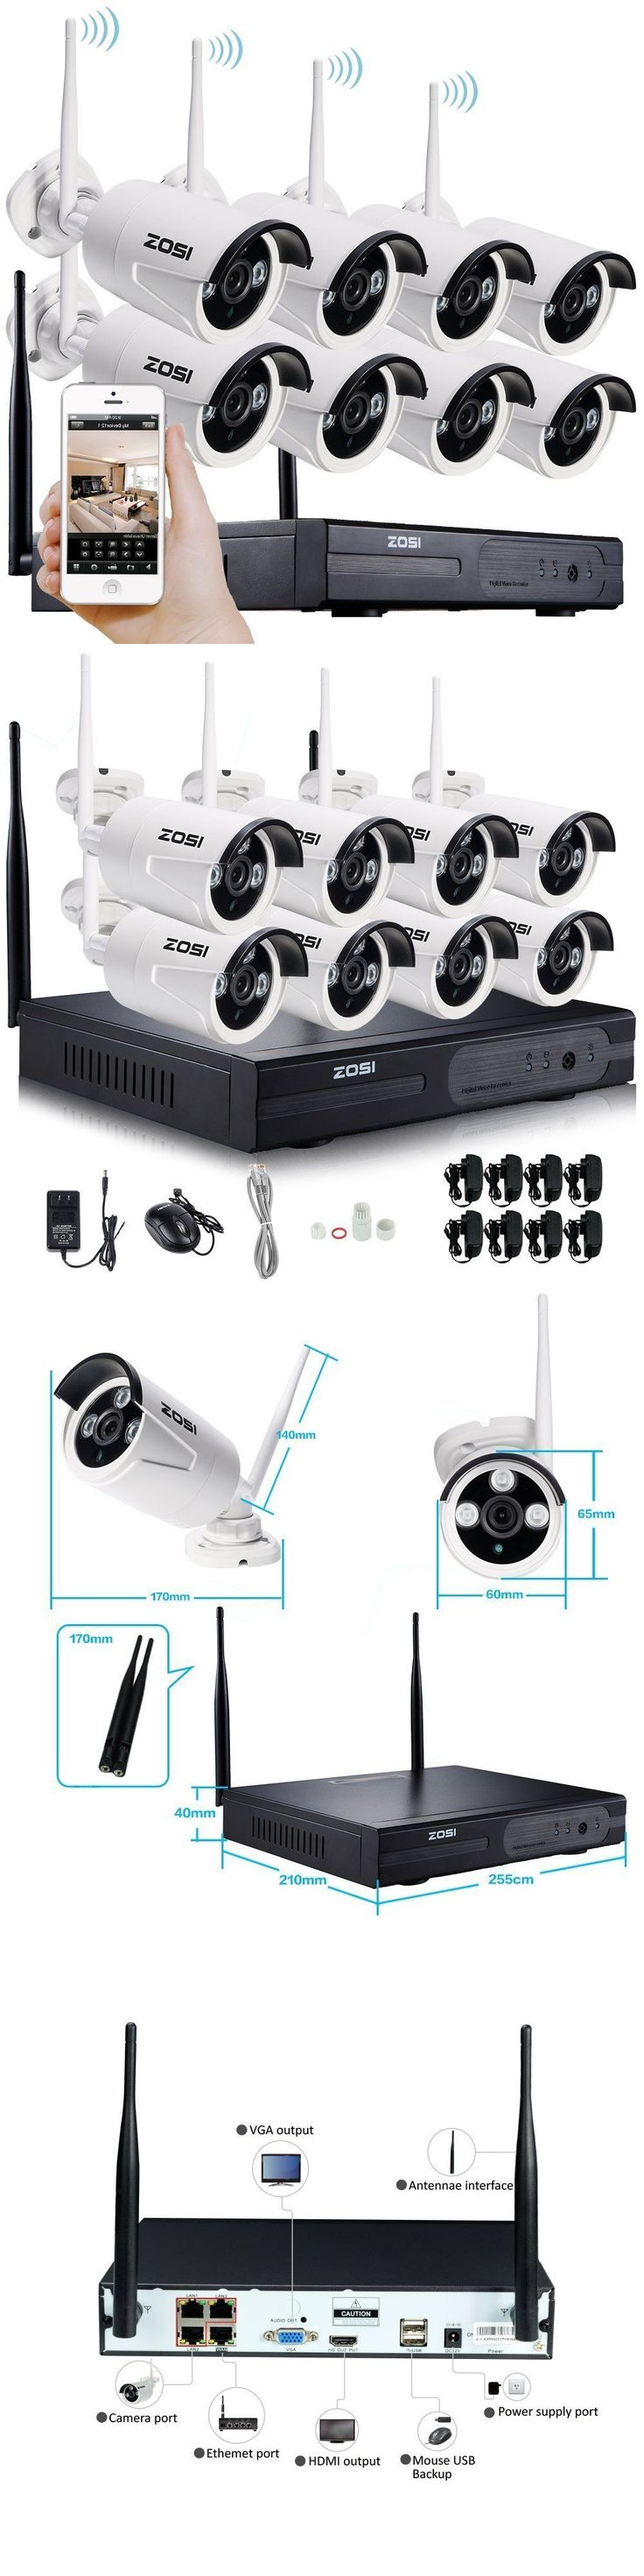 Security Cameras: Zosi 8Ch Wireless Wifi 720P Nvr Outdoor Network Ip Security Camera System 1.0Mp BUY IT NOW ONLY: $269.99